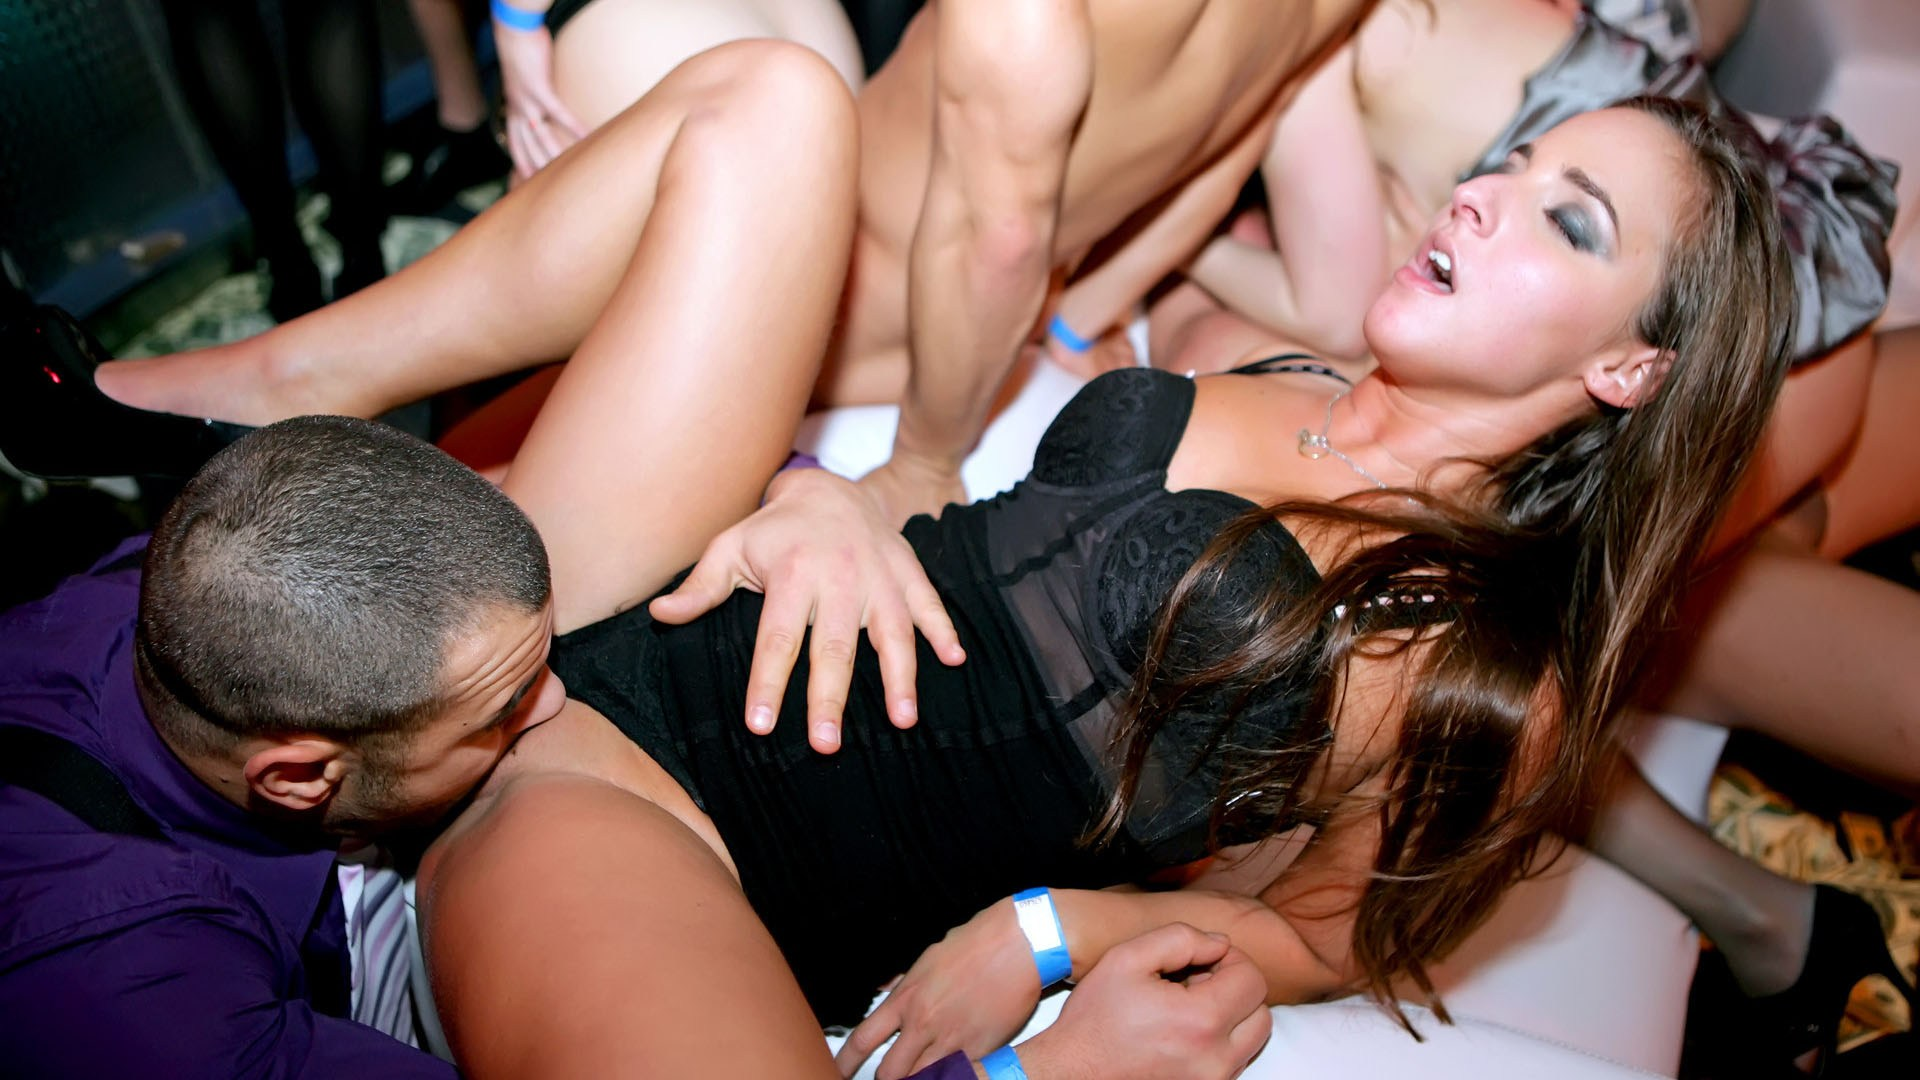 amateur party videos